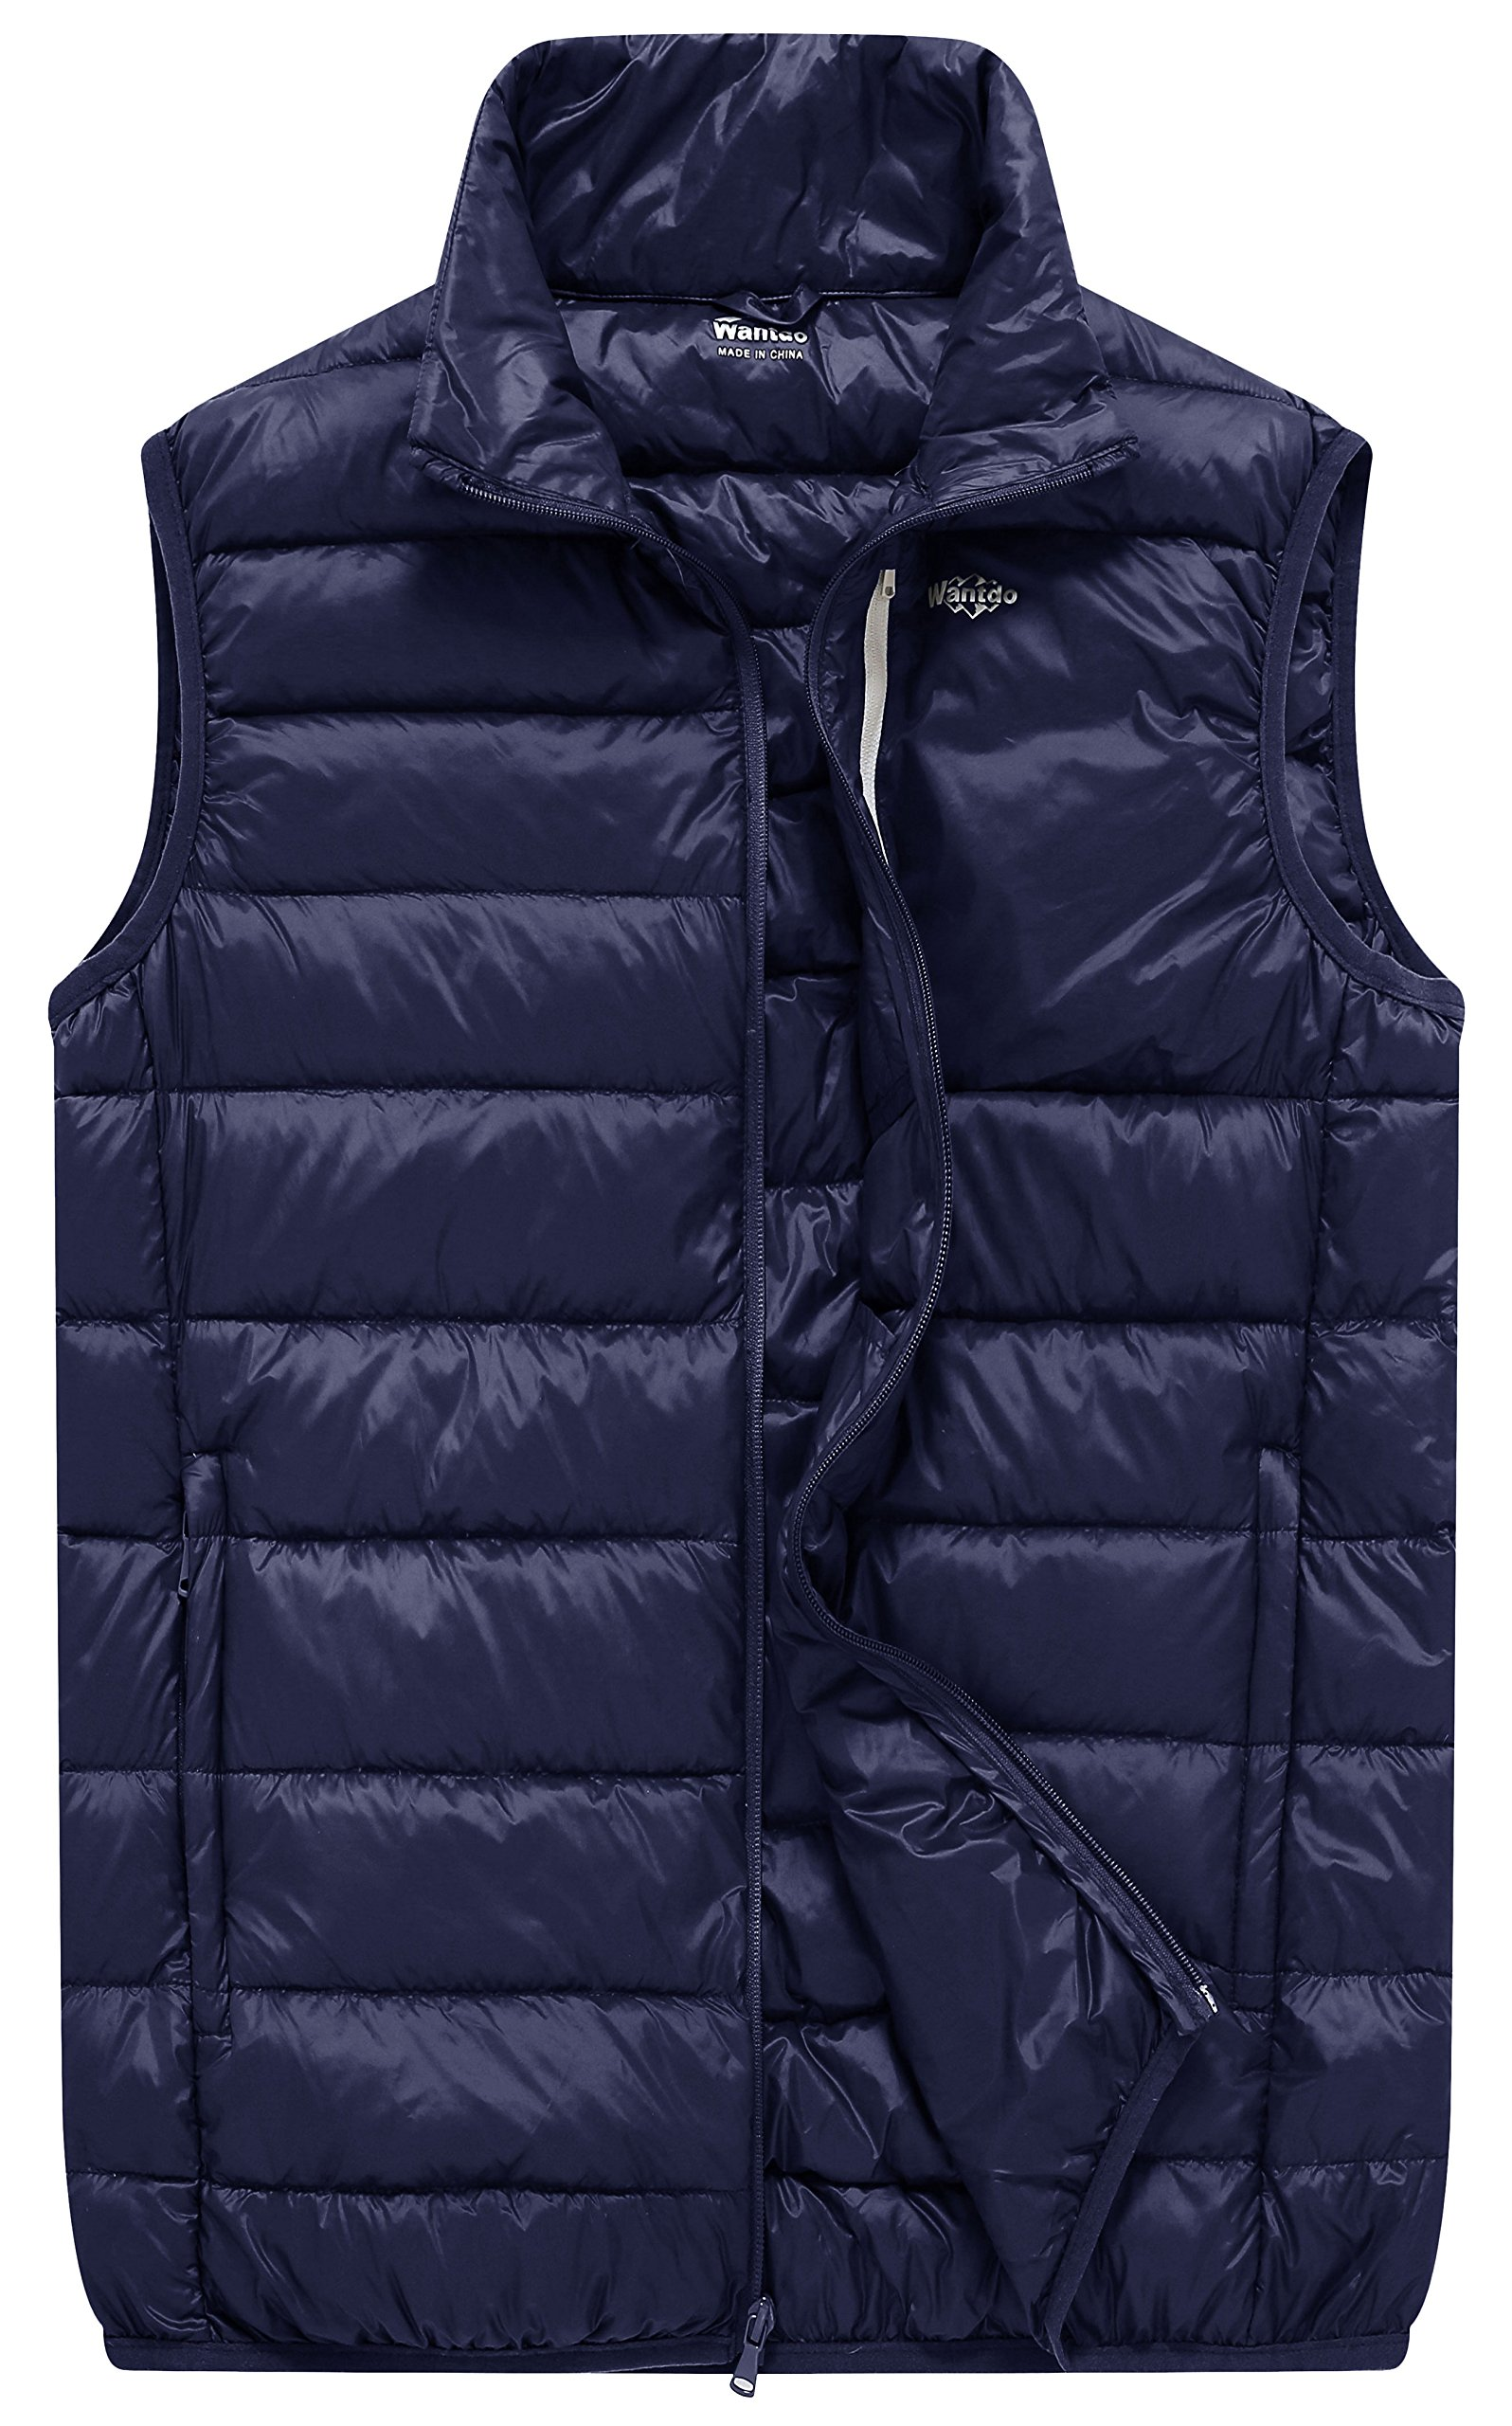 Wantdo Men's Packable Outdoor Ultra Light Heated Down Vest, Navy Blue, S